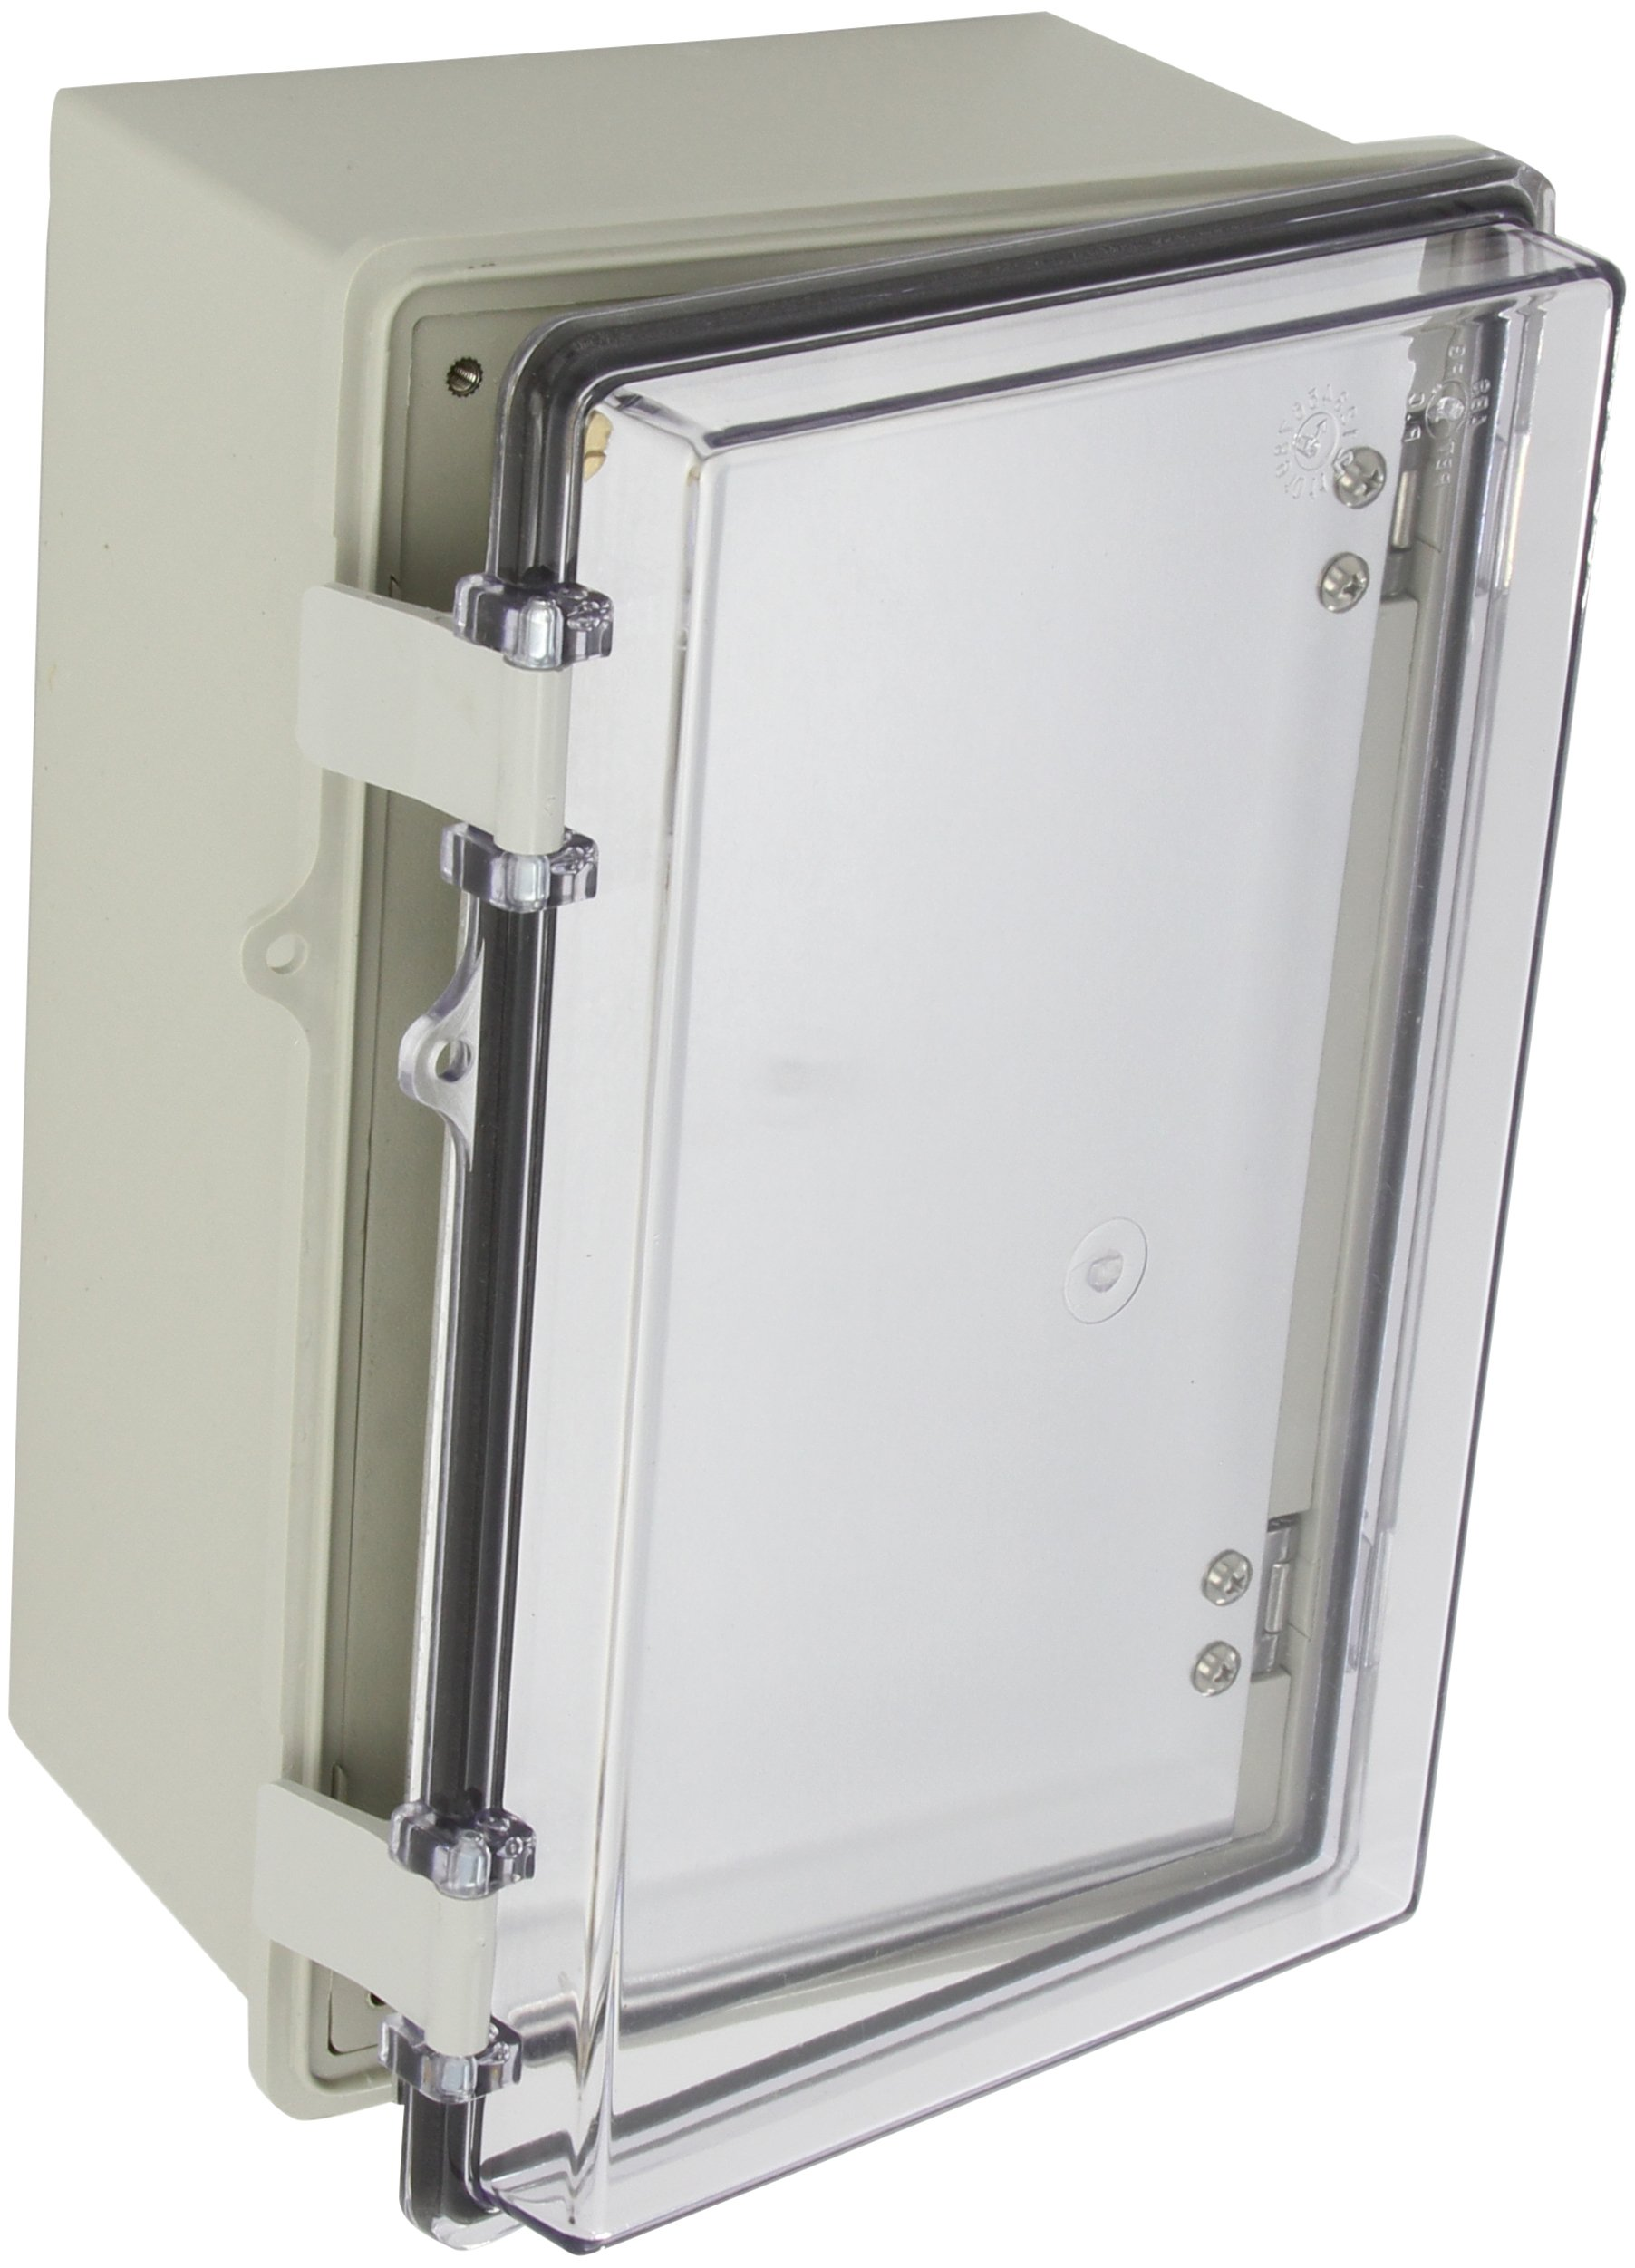 """BUD Industries NBE-10563 Style E Plastic Indoor Box with Clear Door, 11-17/64"""" Length x 7-15/32"""" Width x 5-1/2"""" Height, Light Gray Finish"""